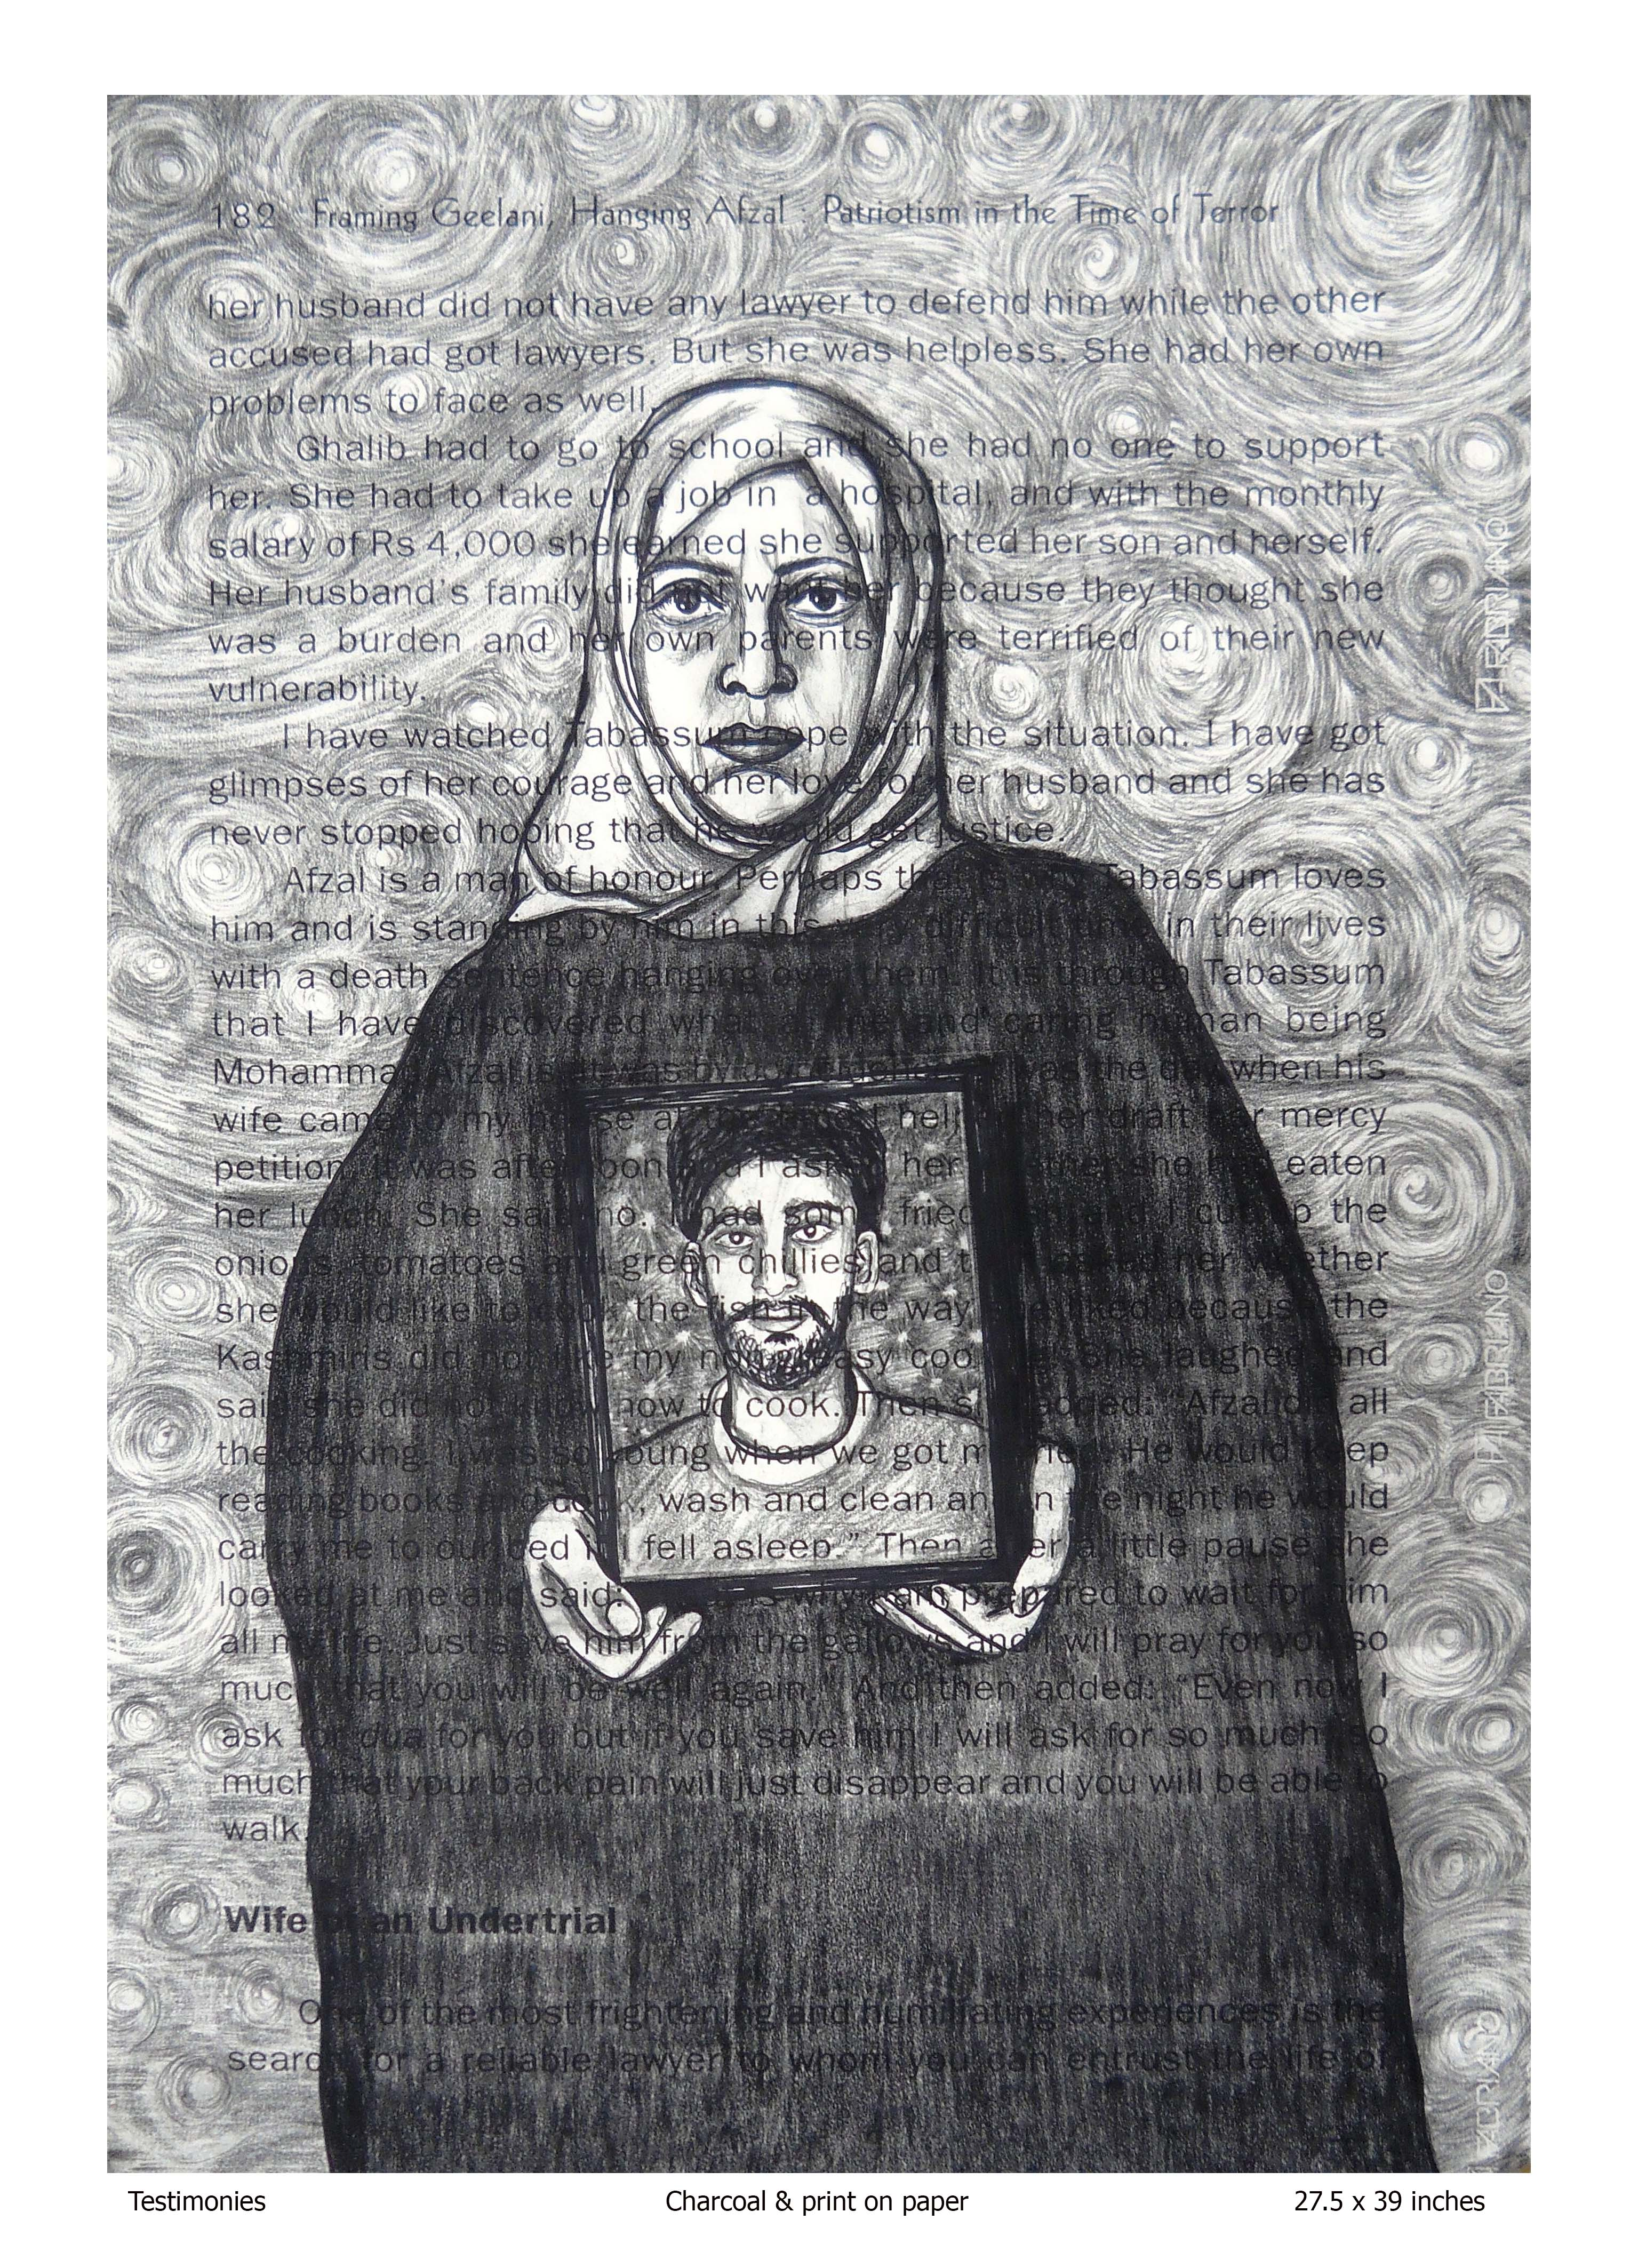 Testimonies, Charcoal and print on paper, Rollie Mukherjee